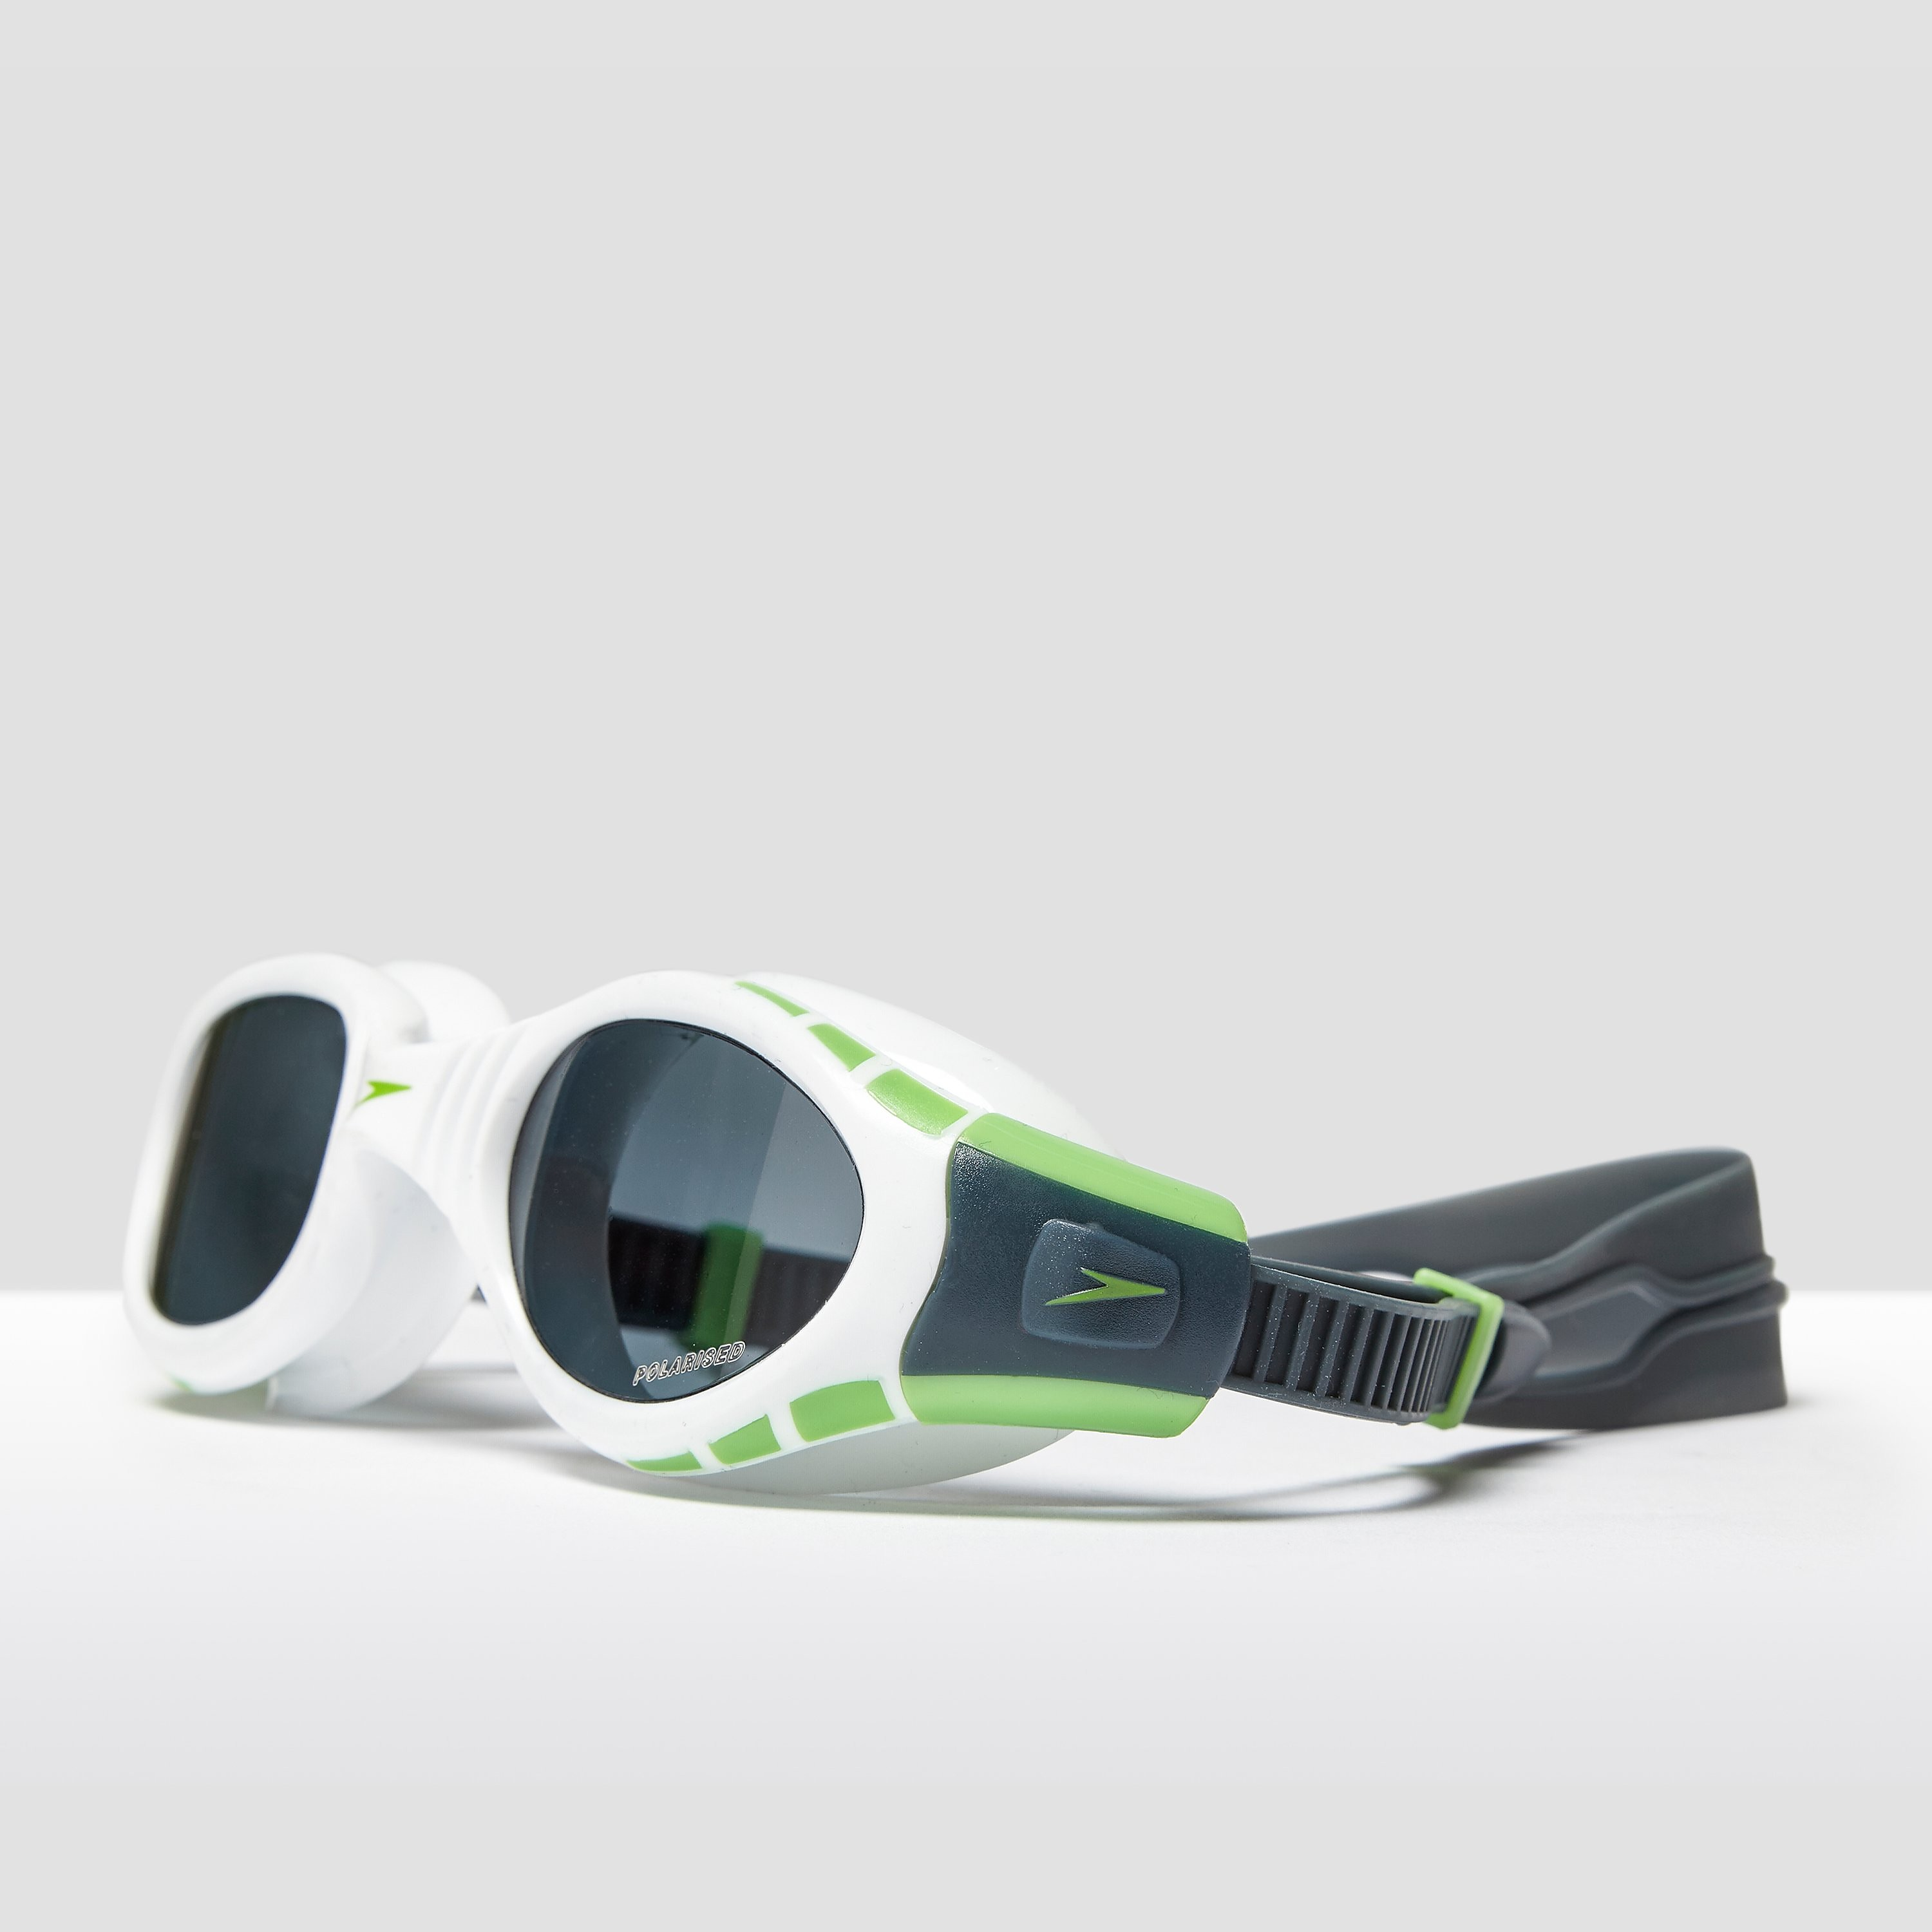 Speedo Futura Biofuse Polarised Adult Goggles